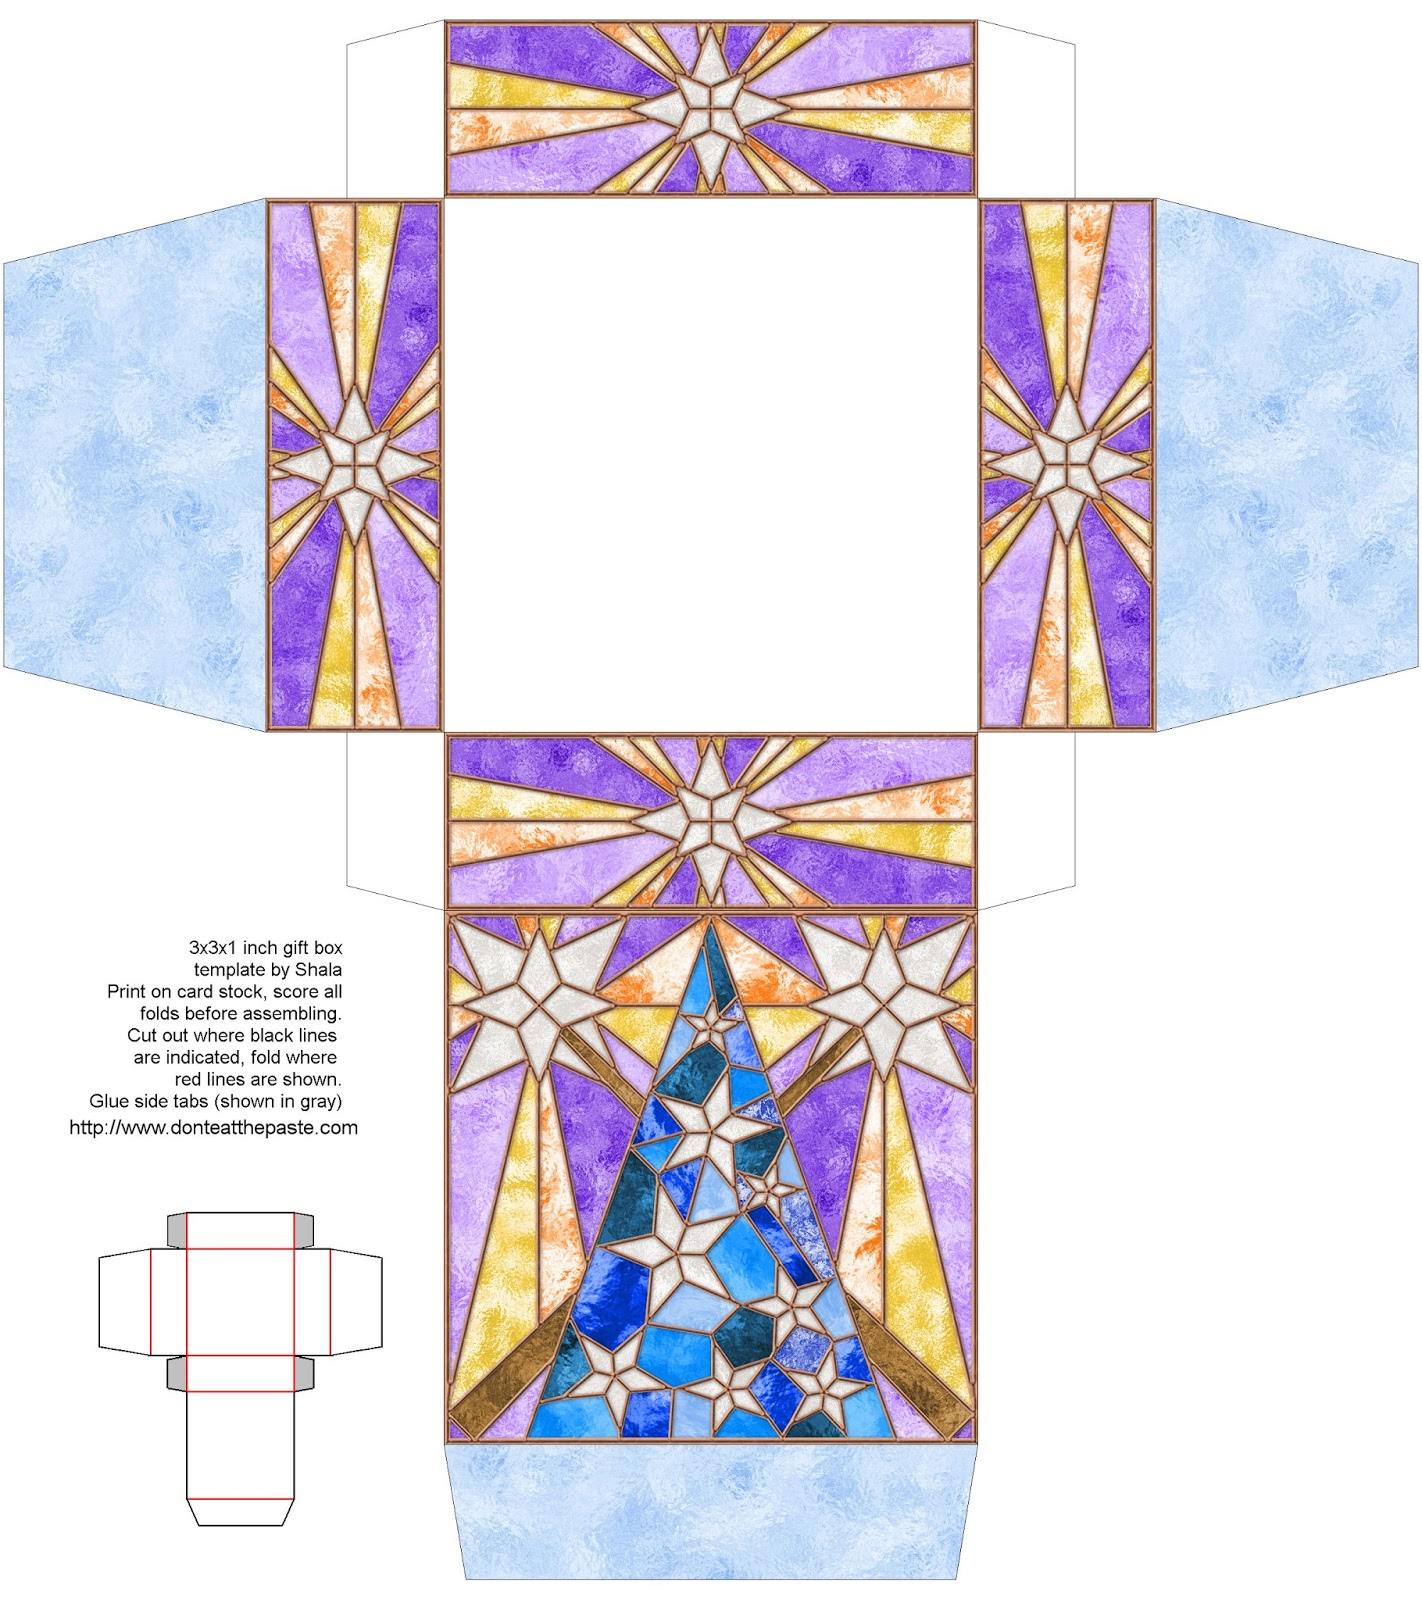 Printable stained glass effect gift box